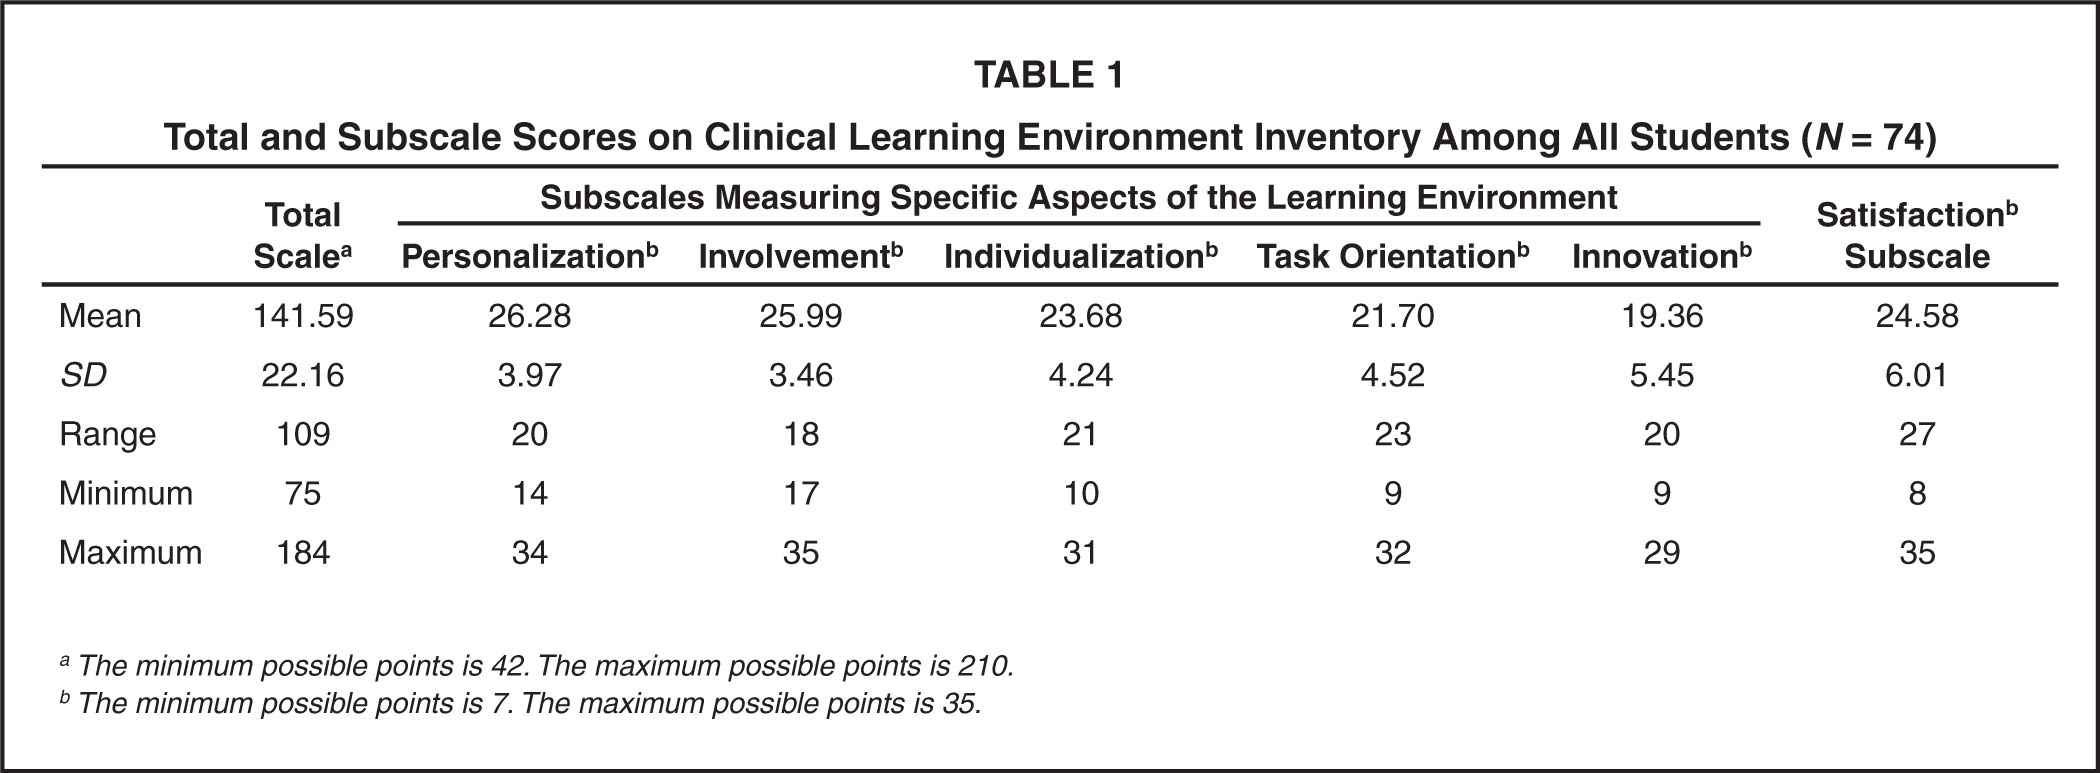 Total and Subscale Scores on Clinical Learning Environment Inventory Among All Students (N = 74)